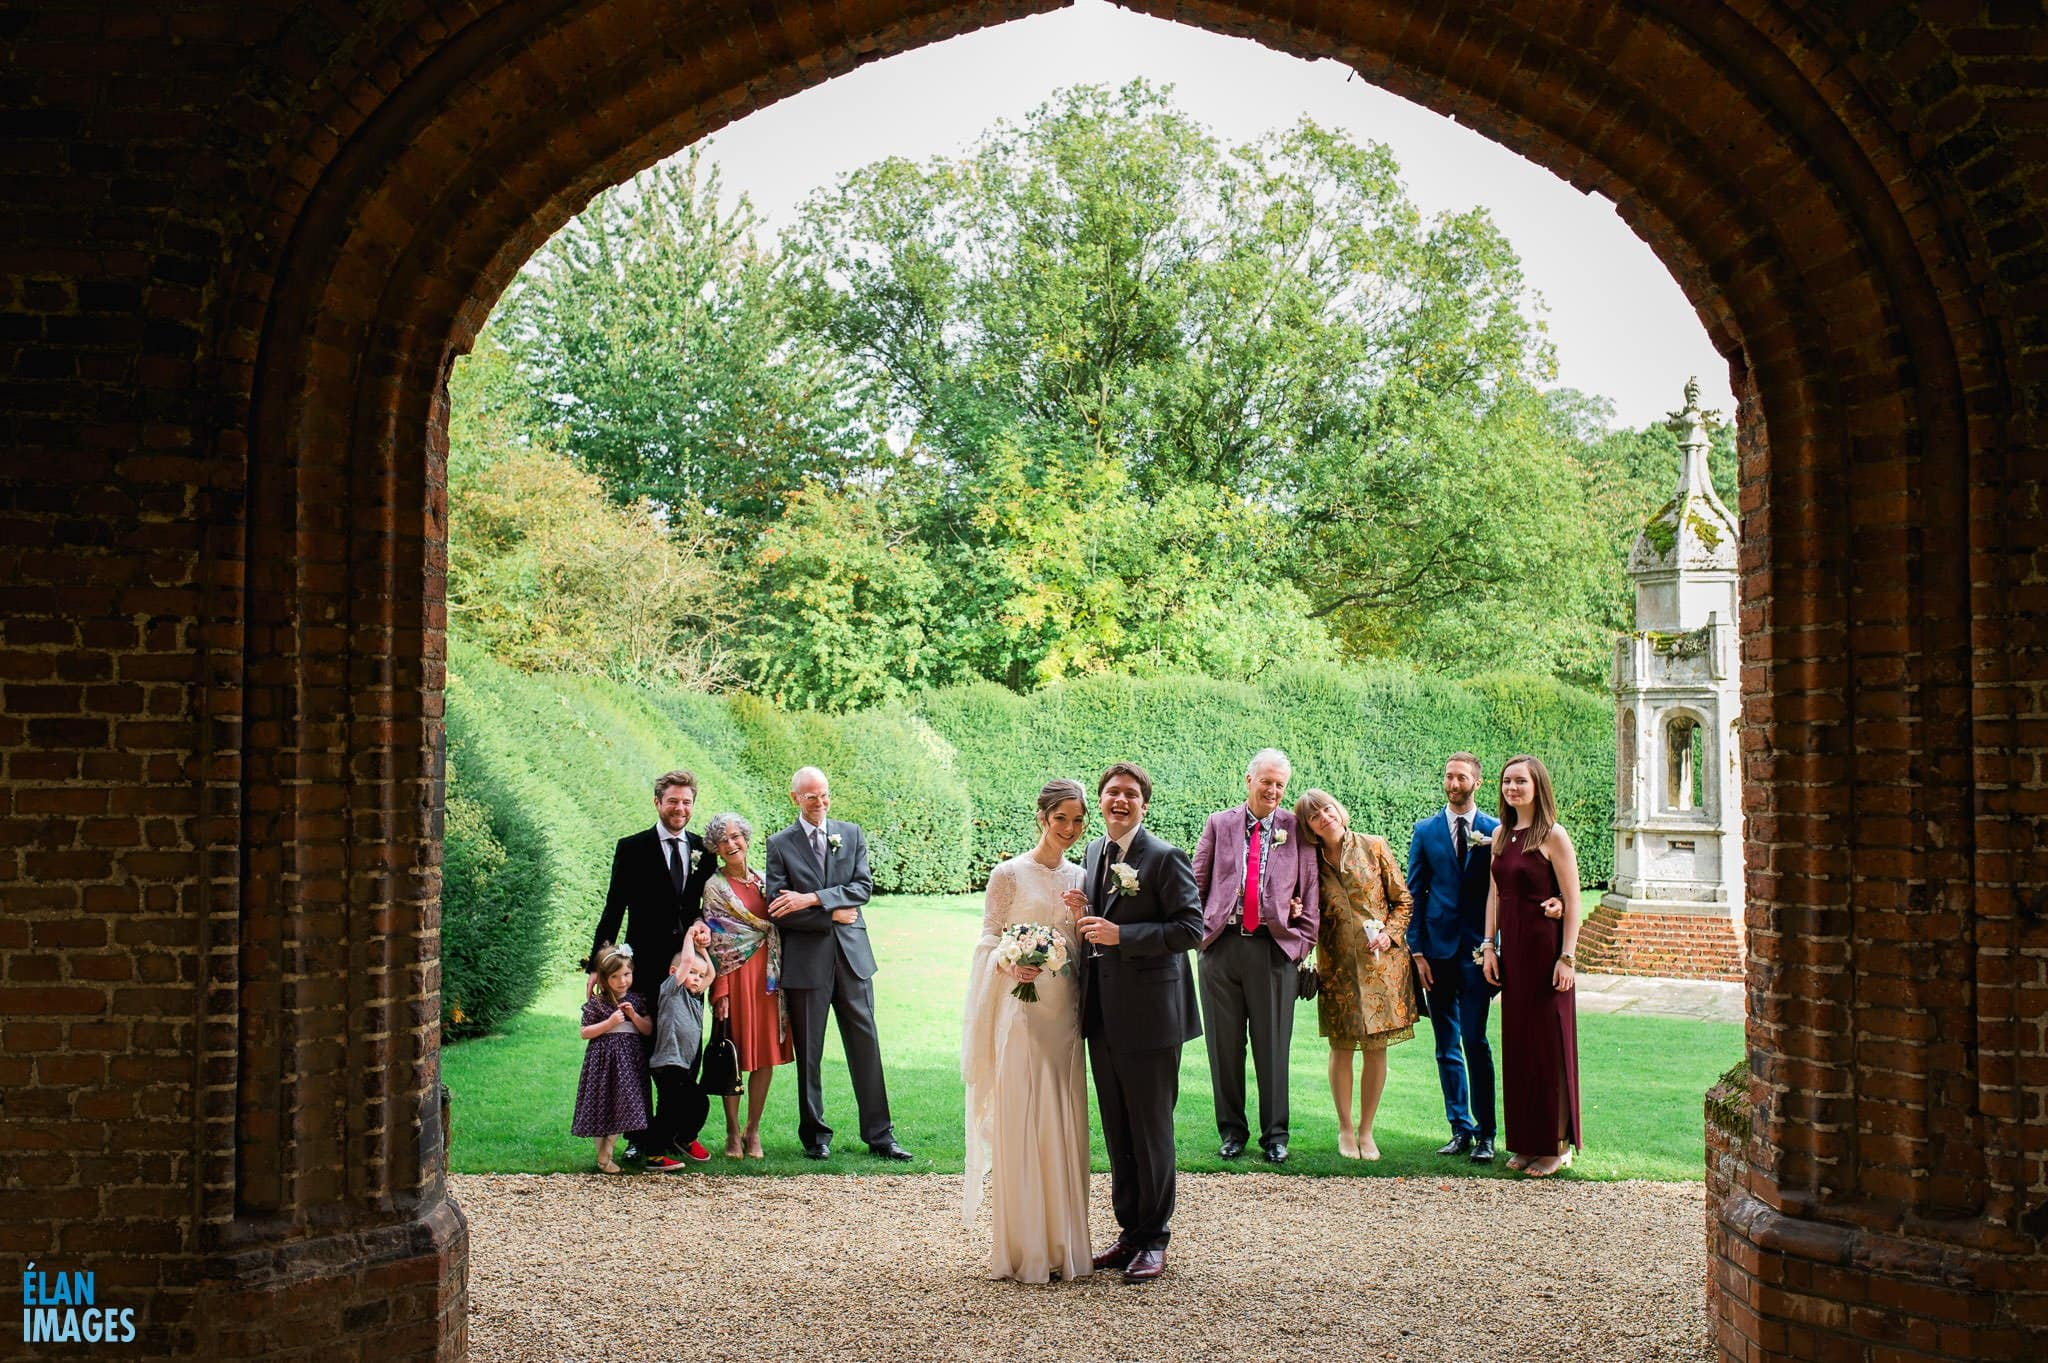 Wedding at Leez Priory, Essex 29